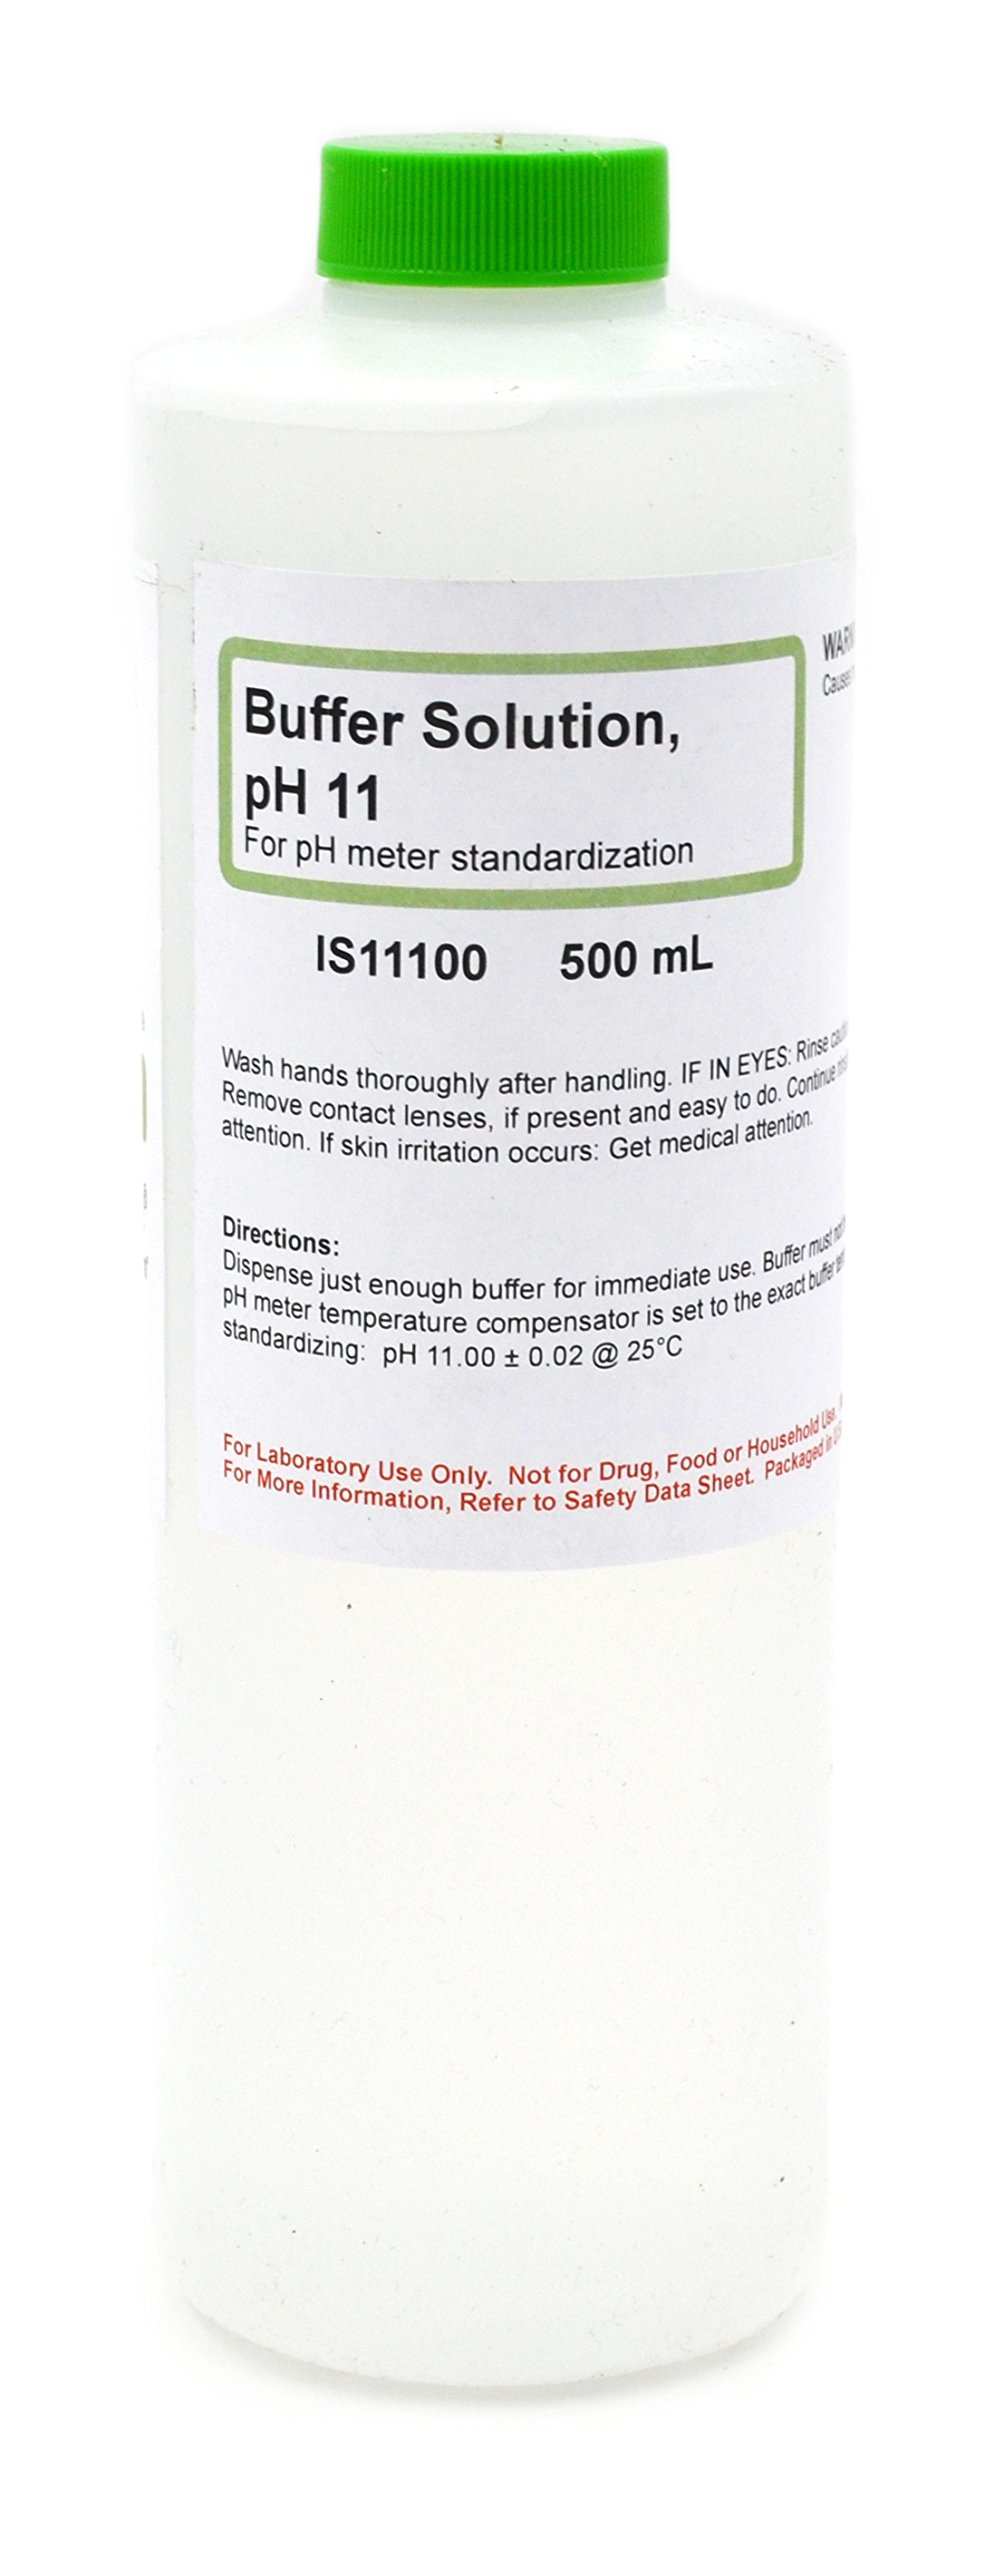 Standard Buffer Solution, pH 11, 500mL - The Curated Chemical Collection